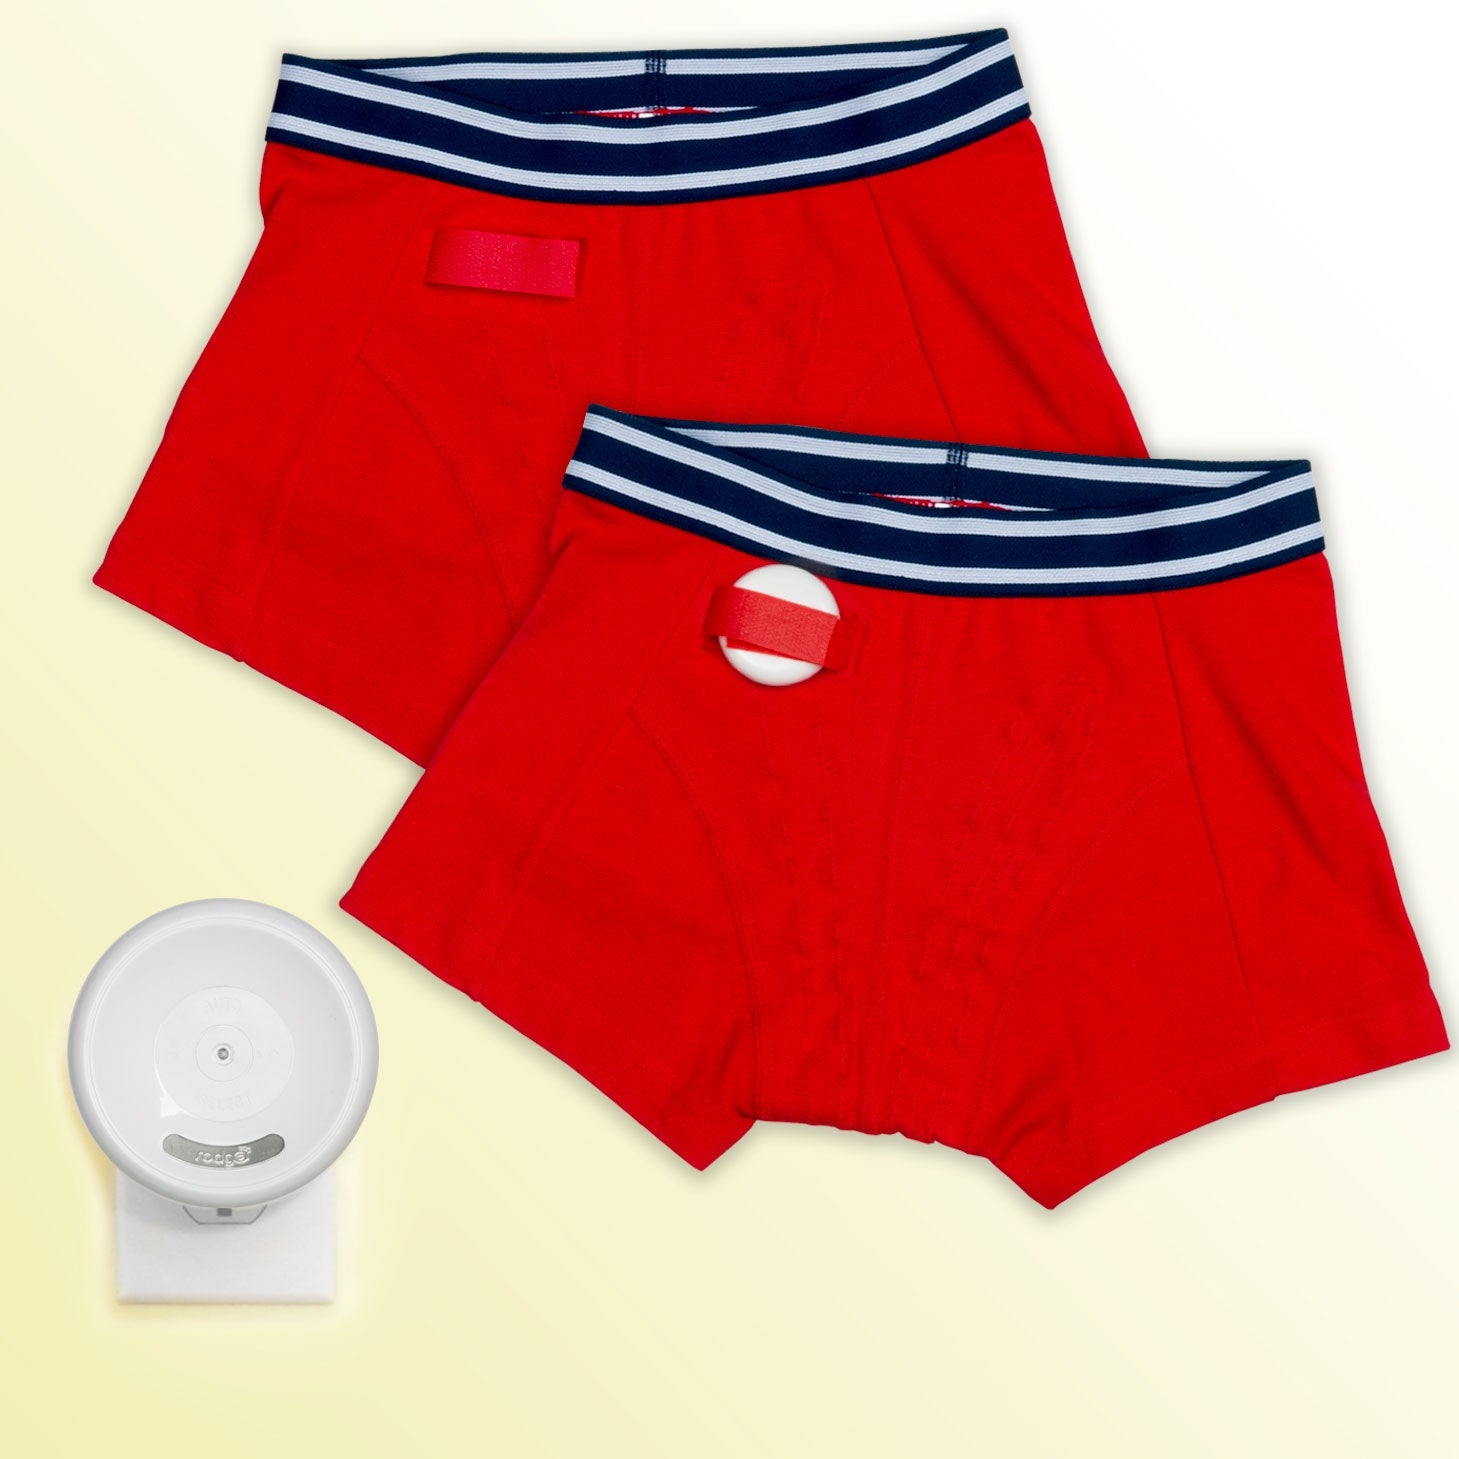 Rodger Wireless Bedwetting Alarm System-Red Briefs only